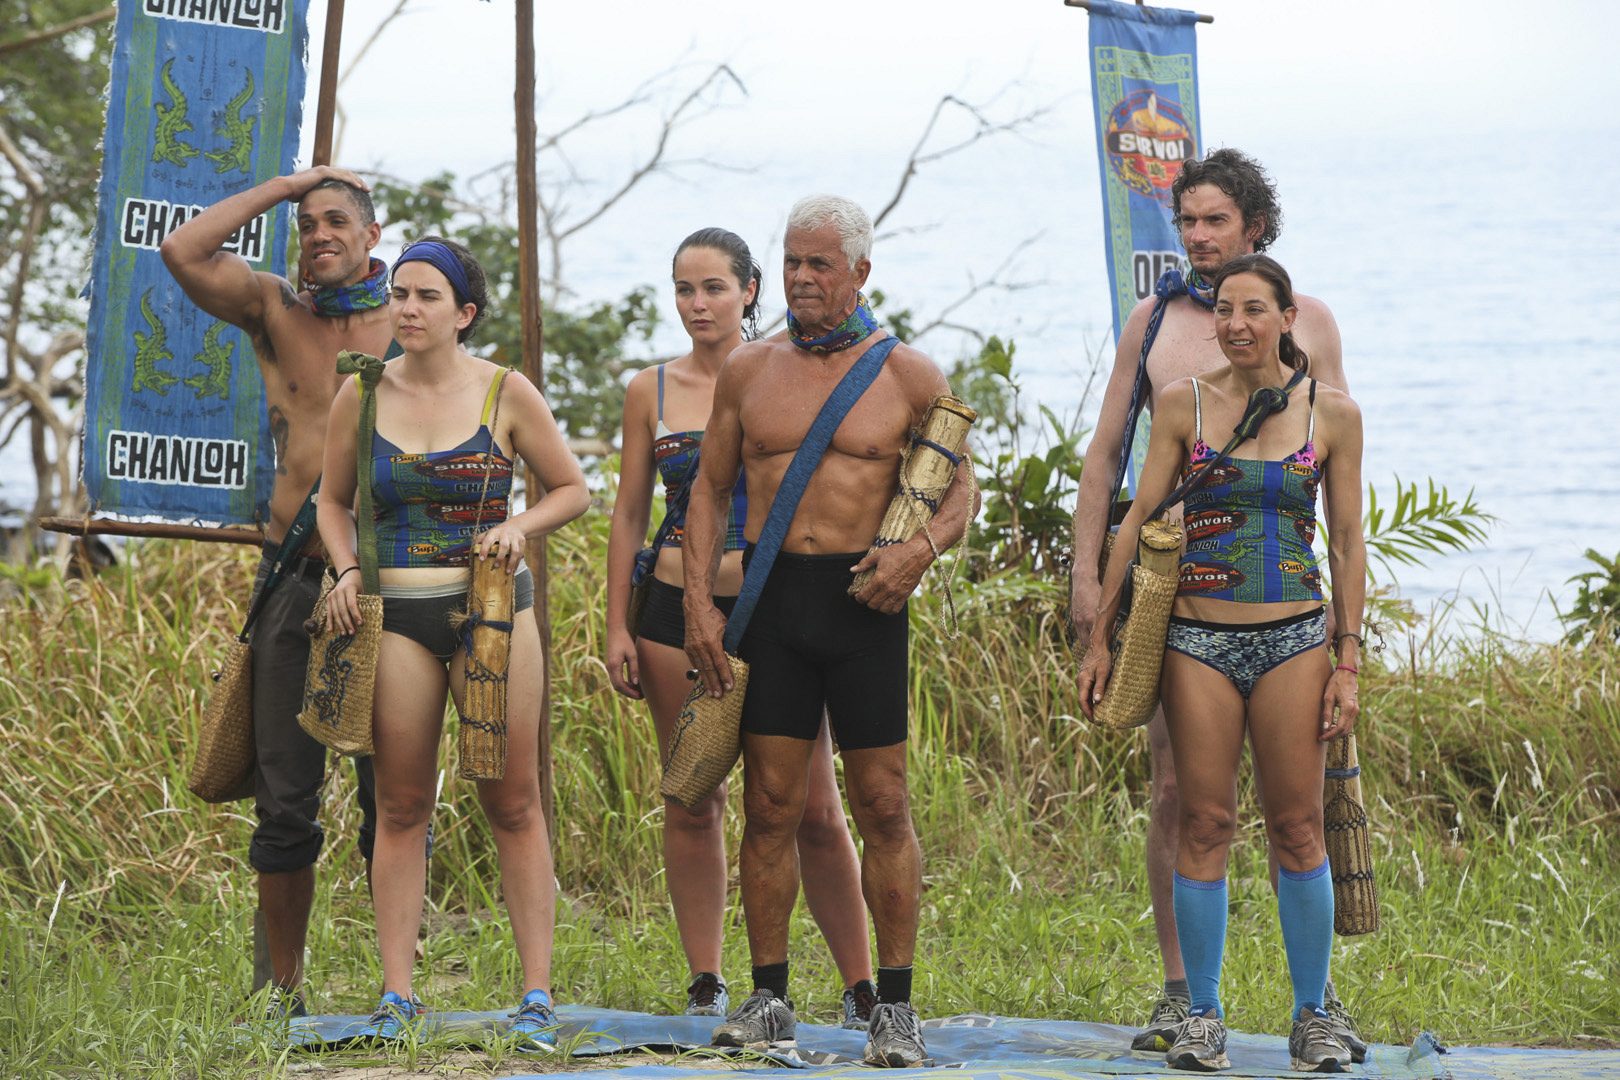 Jeff Probst tells the tribes what rewards are in store after their first Challenge.